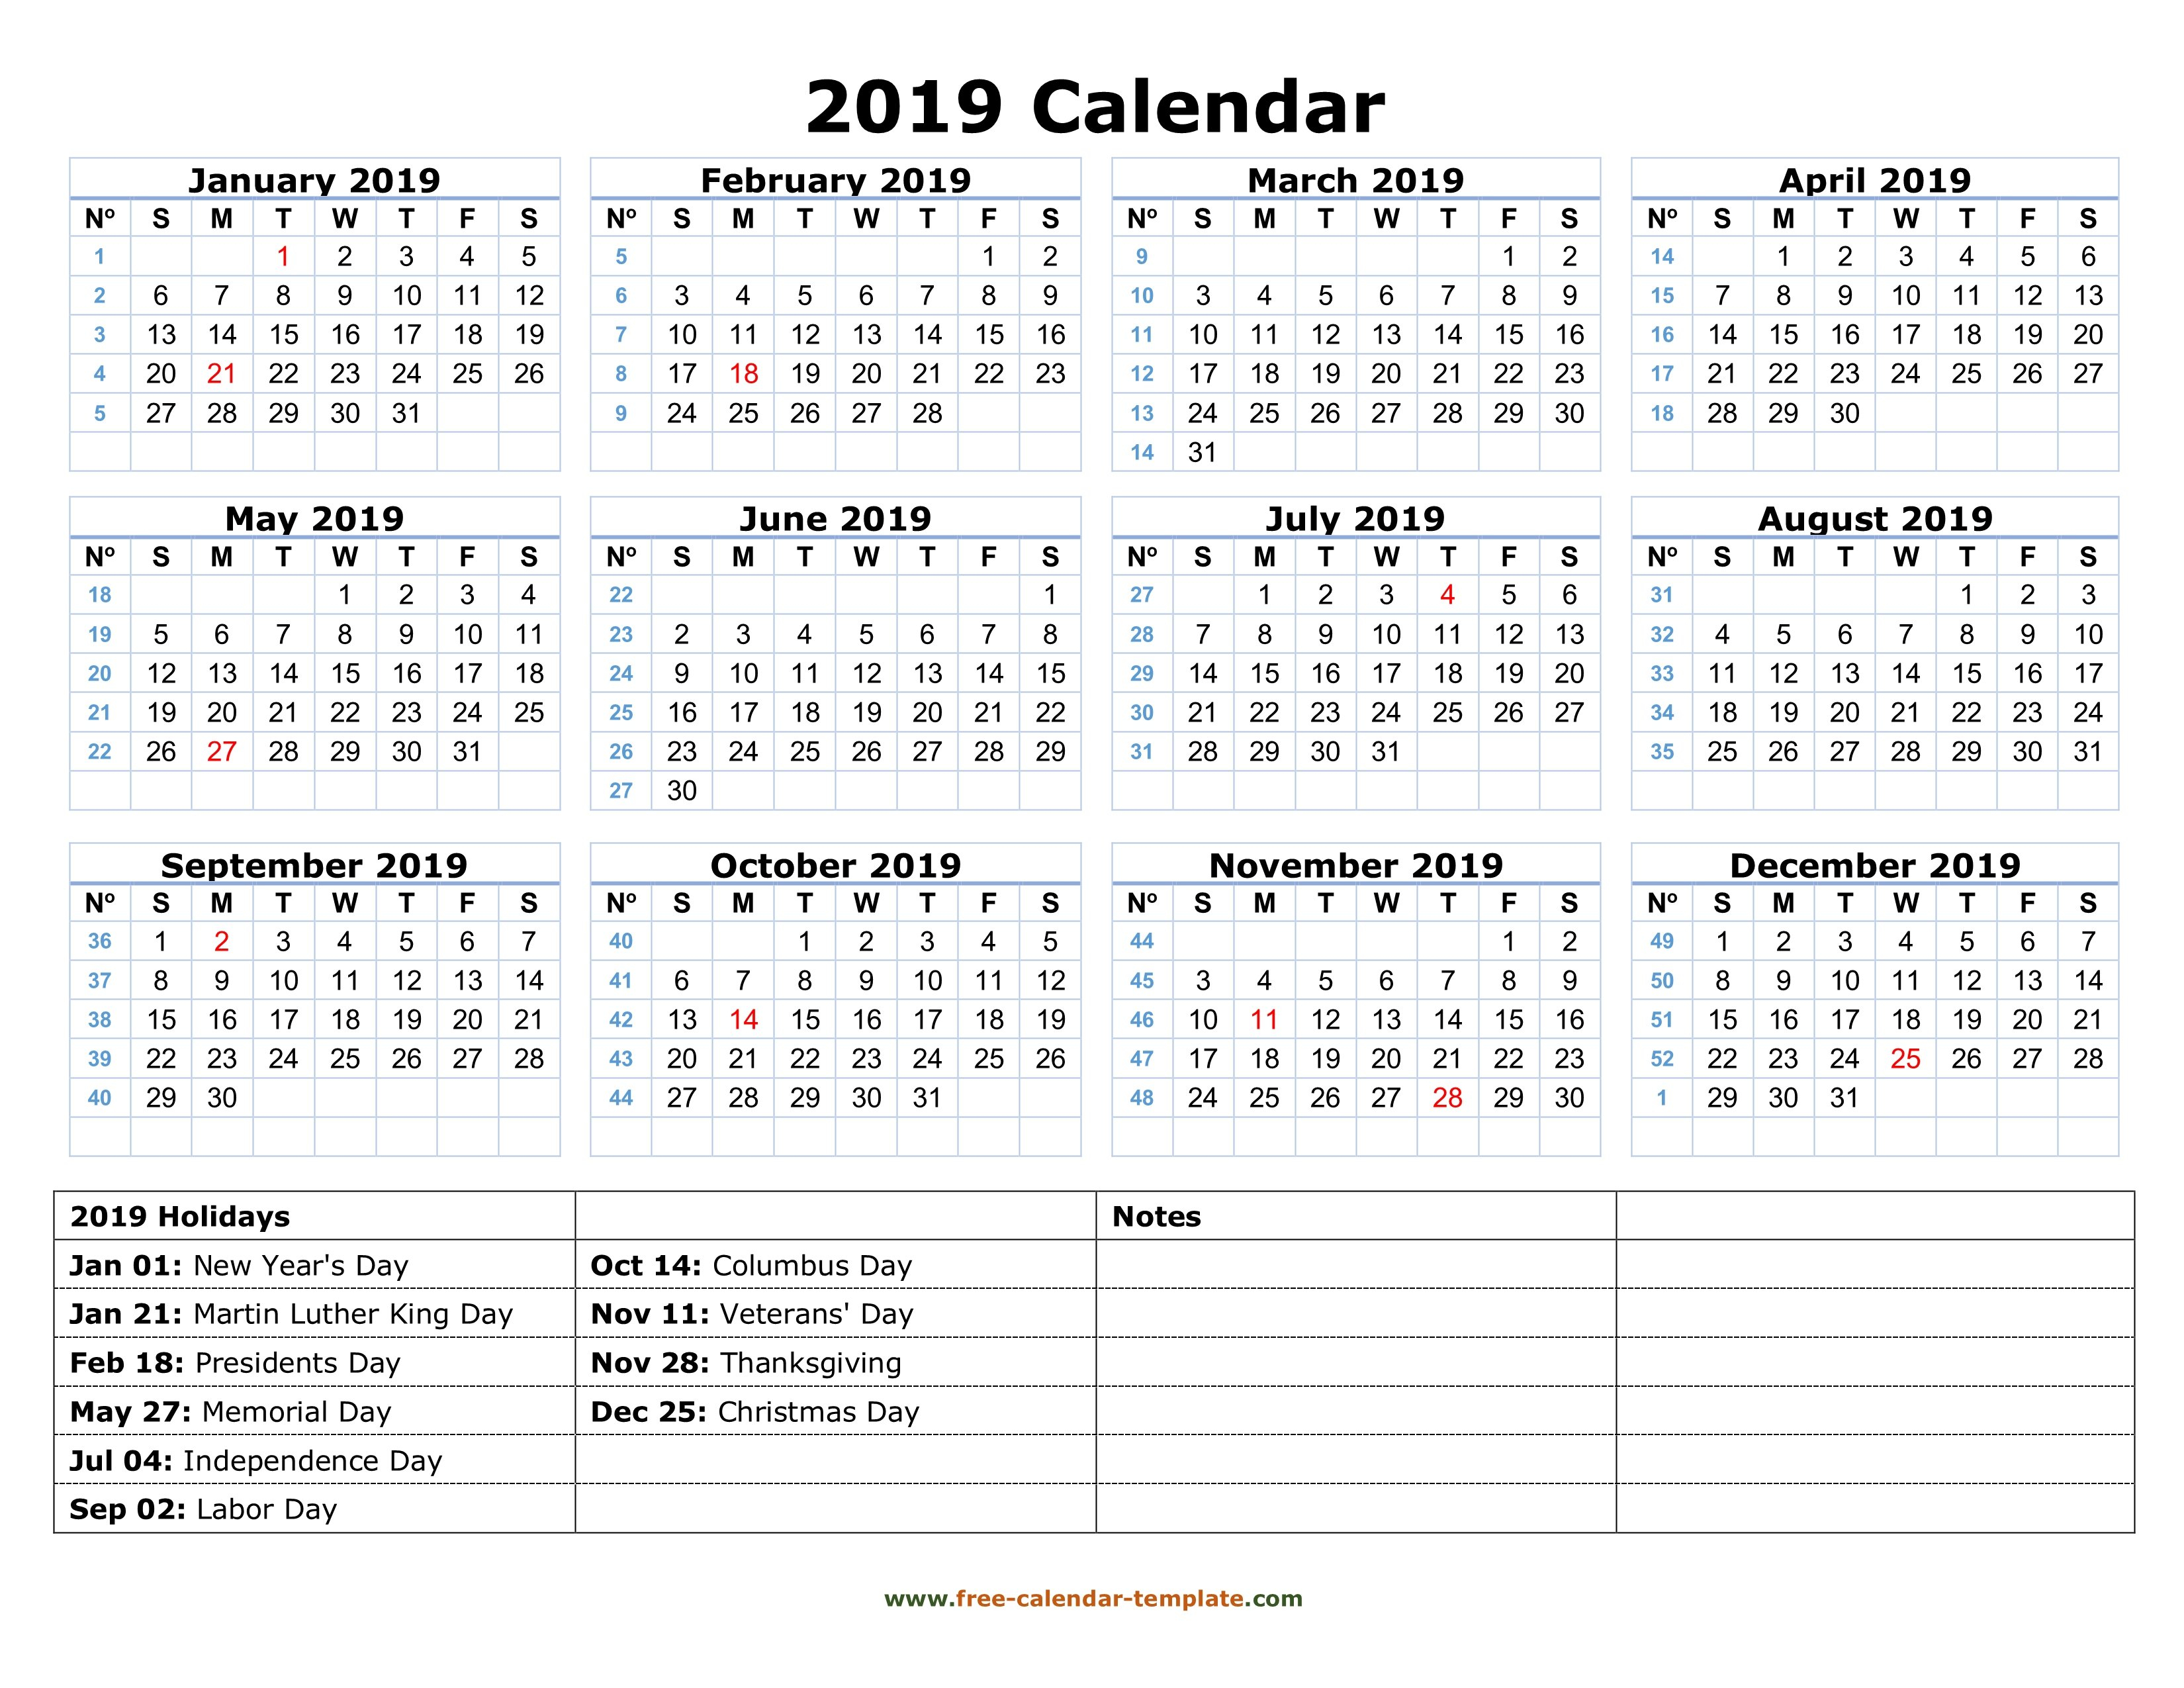 Printable Yearly Calendar 2019 With Us Holidays | Free-Calendar Calendar 2019 Presidents Day